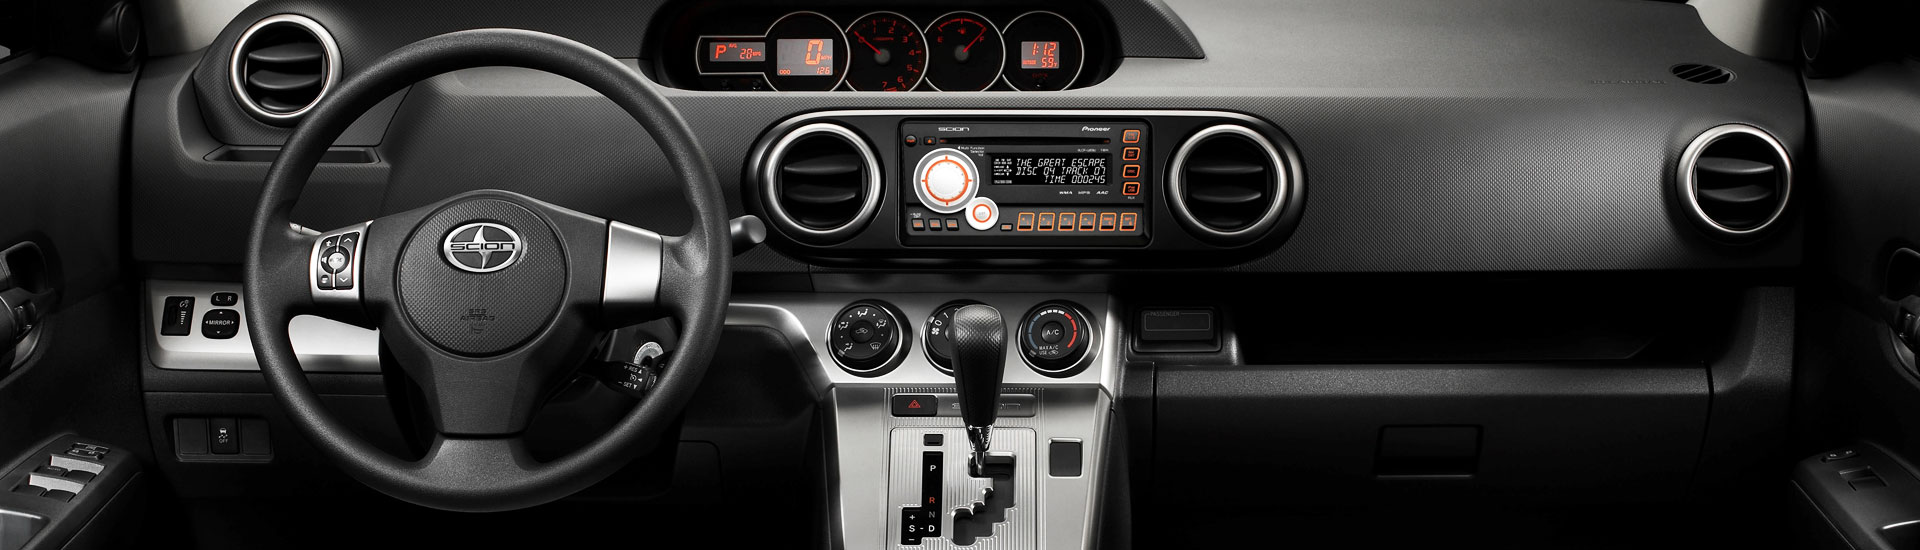 Scion xB Custom Dash Kits